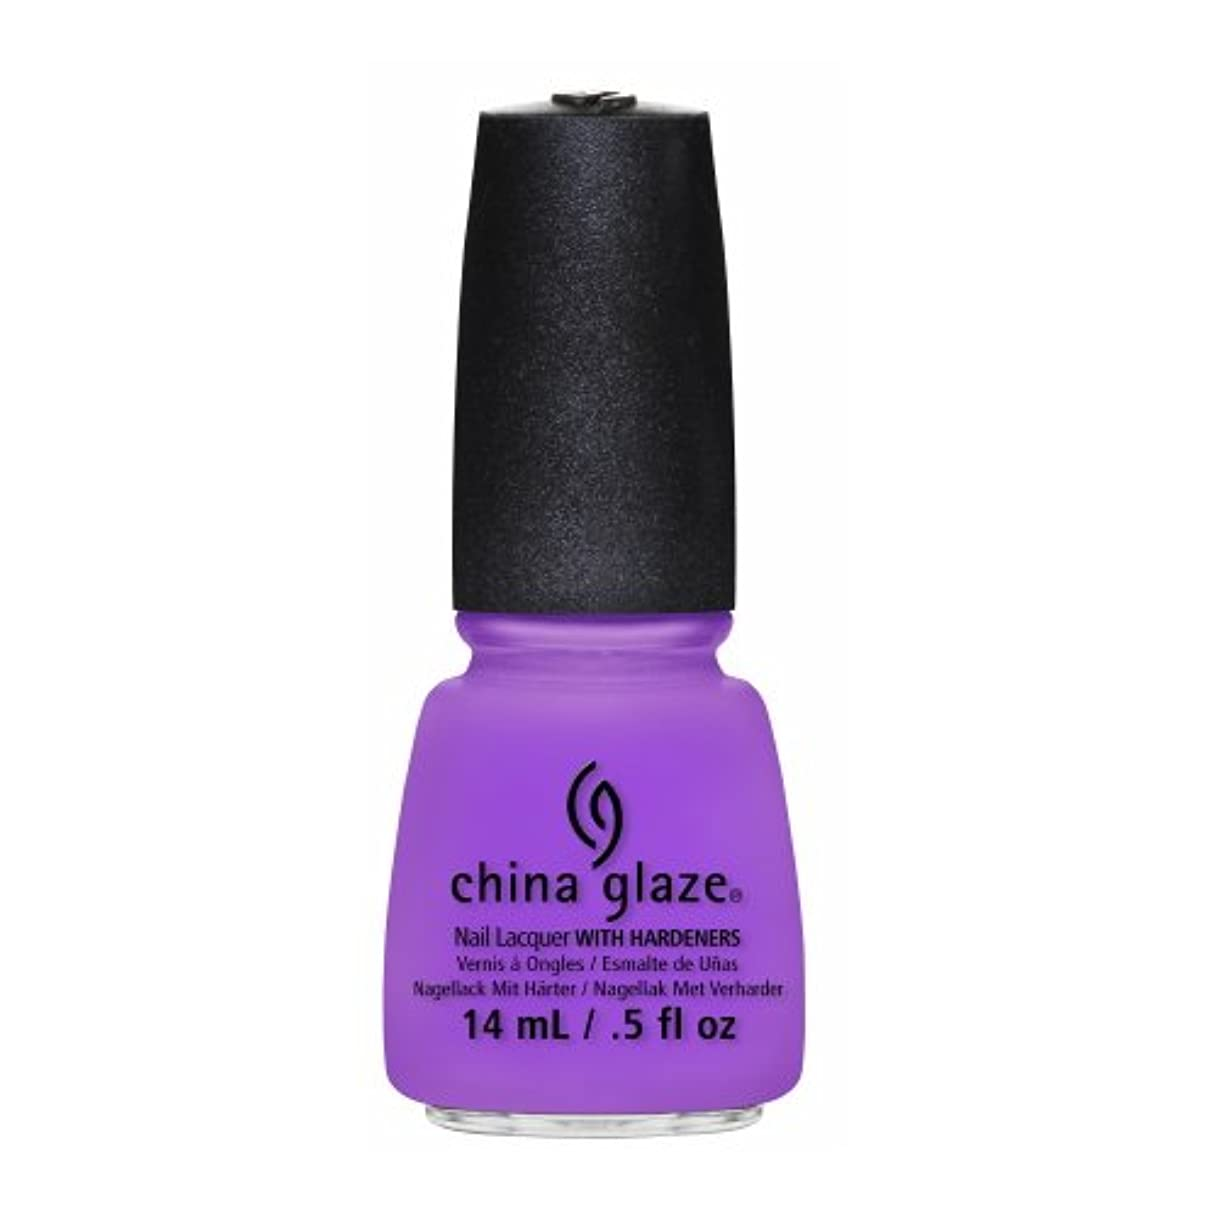 ノーブルに付ける論争の的(6 Pack) CHINA GLAZE Nail Lacquer - Sunsational - That's Shore Bright (並行輸入品)